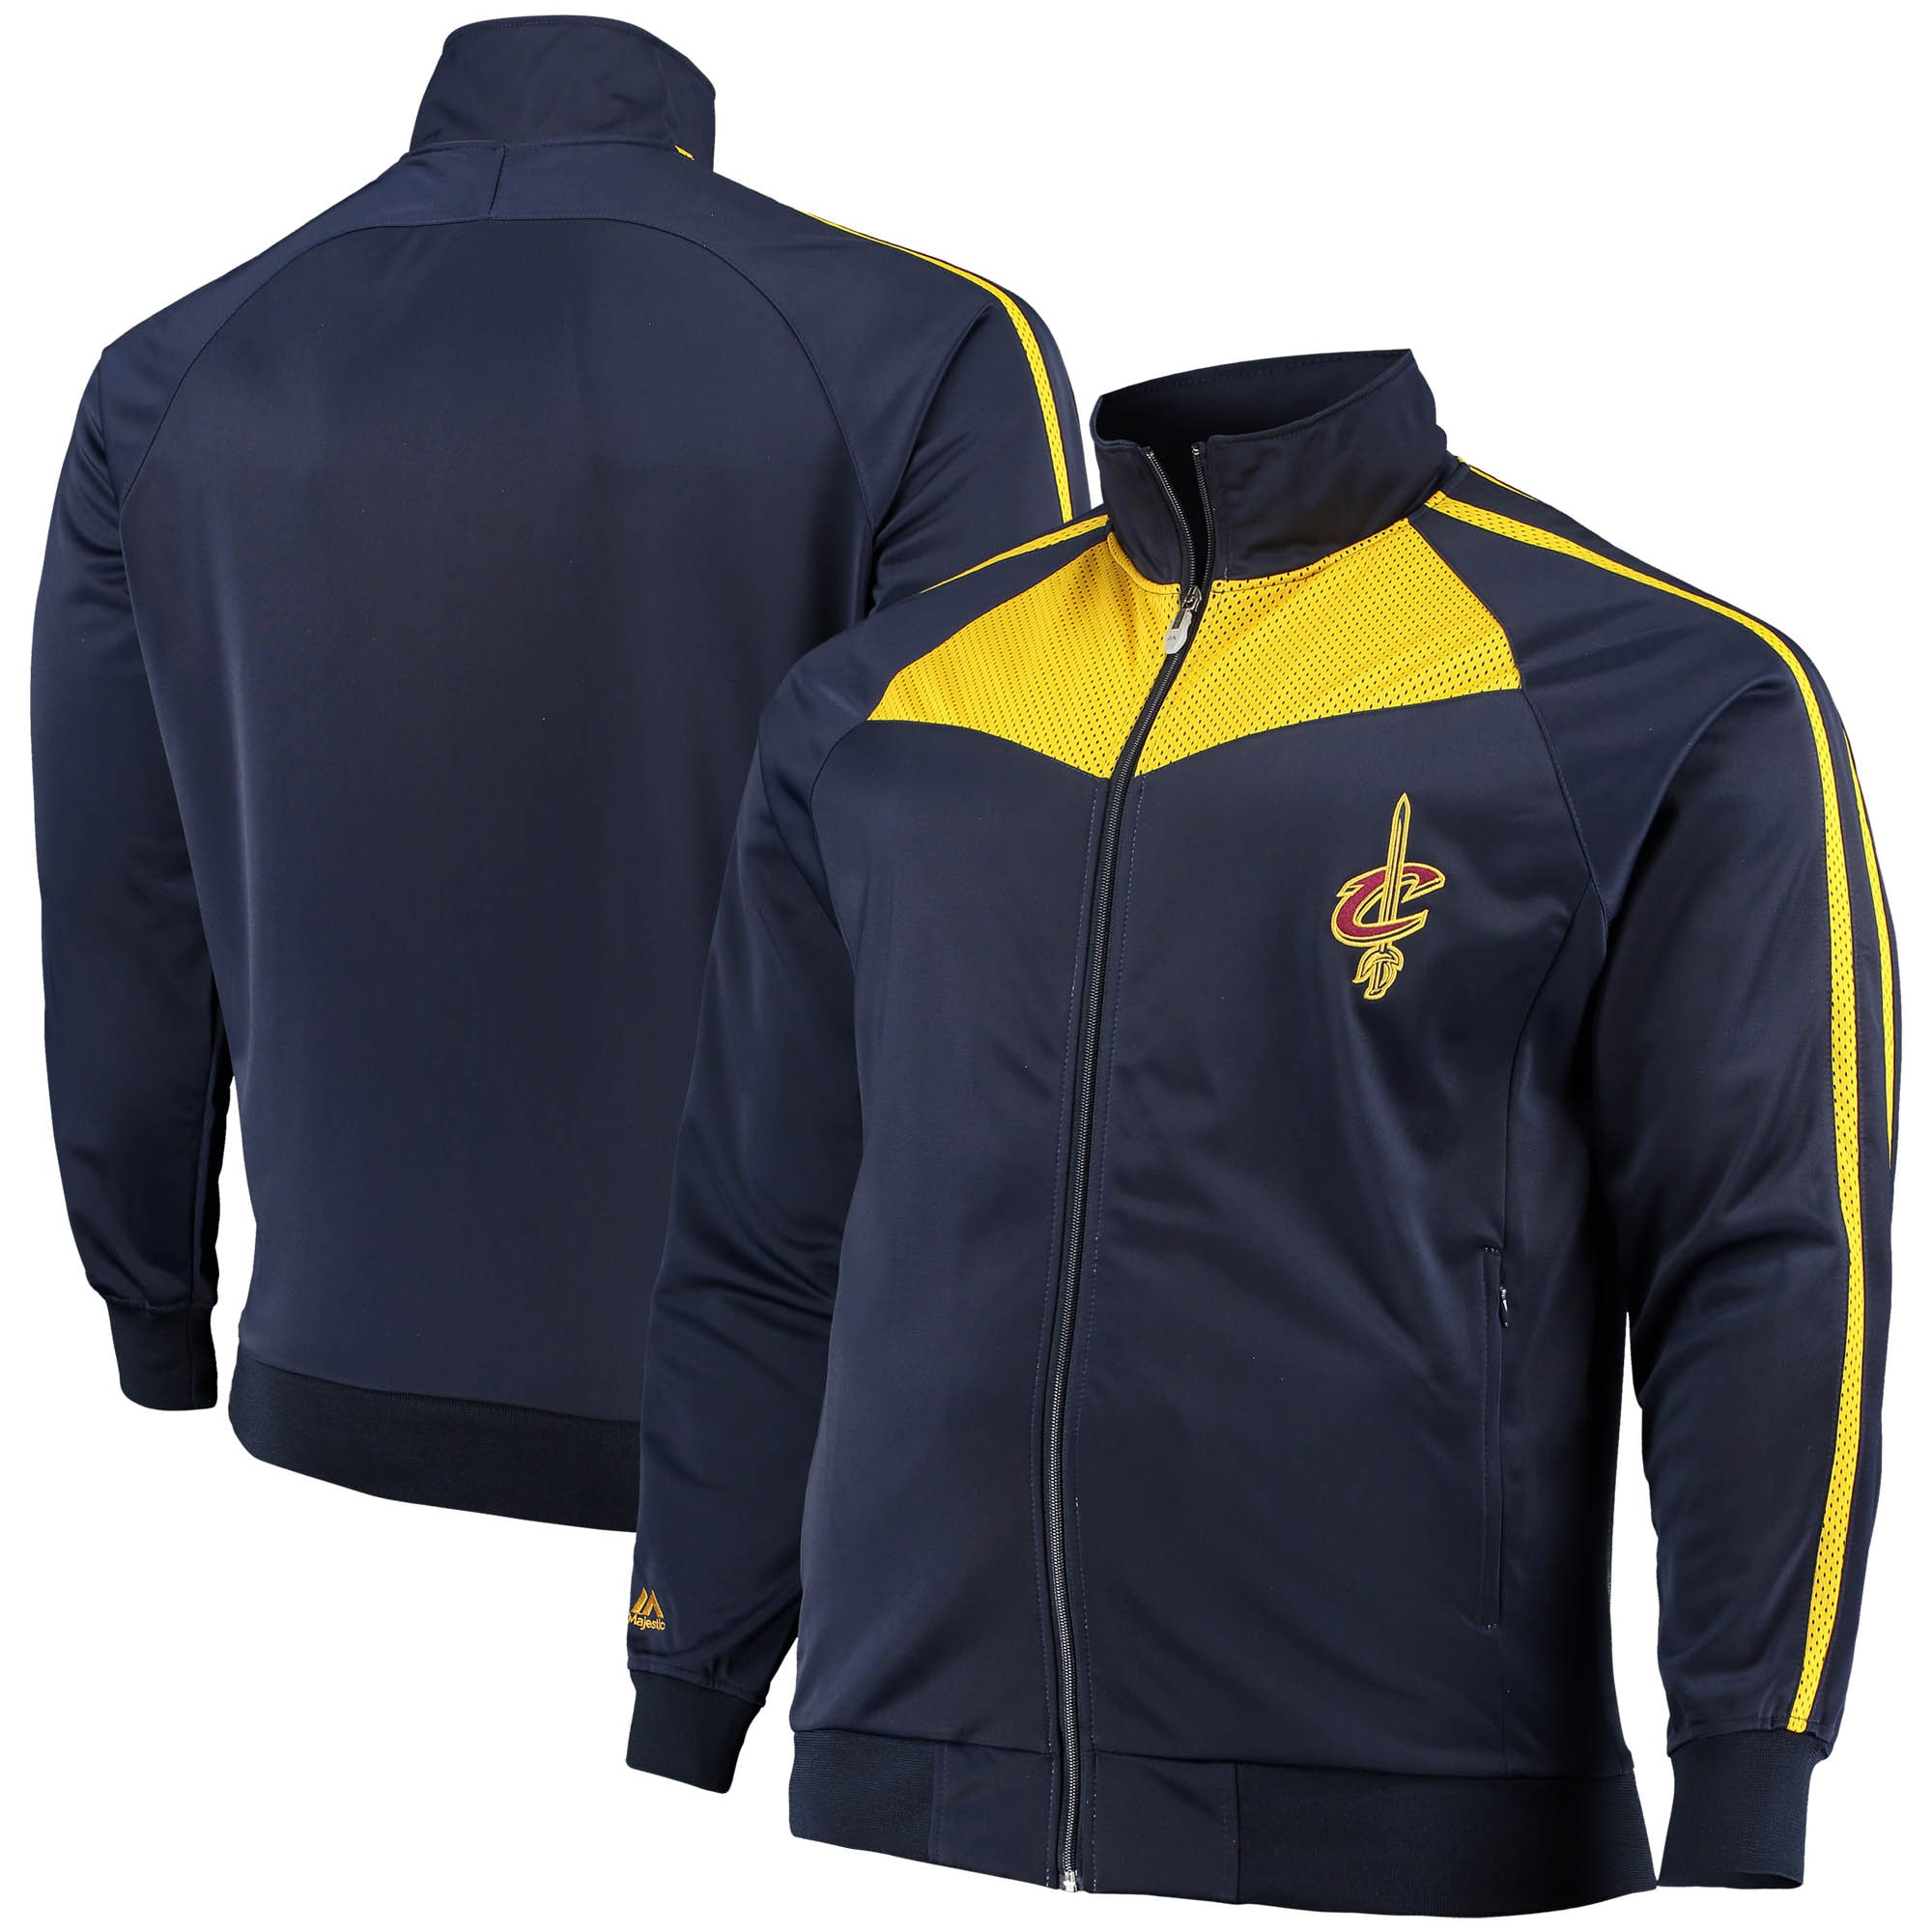 Cleveland Cavaliers Big & Tall Team Showtime Tricot Full-Zip Track Jacket - Navy/Gold